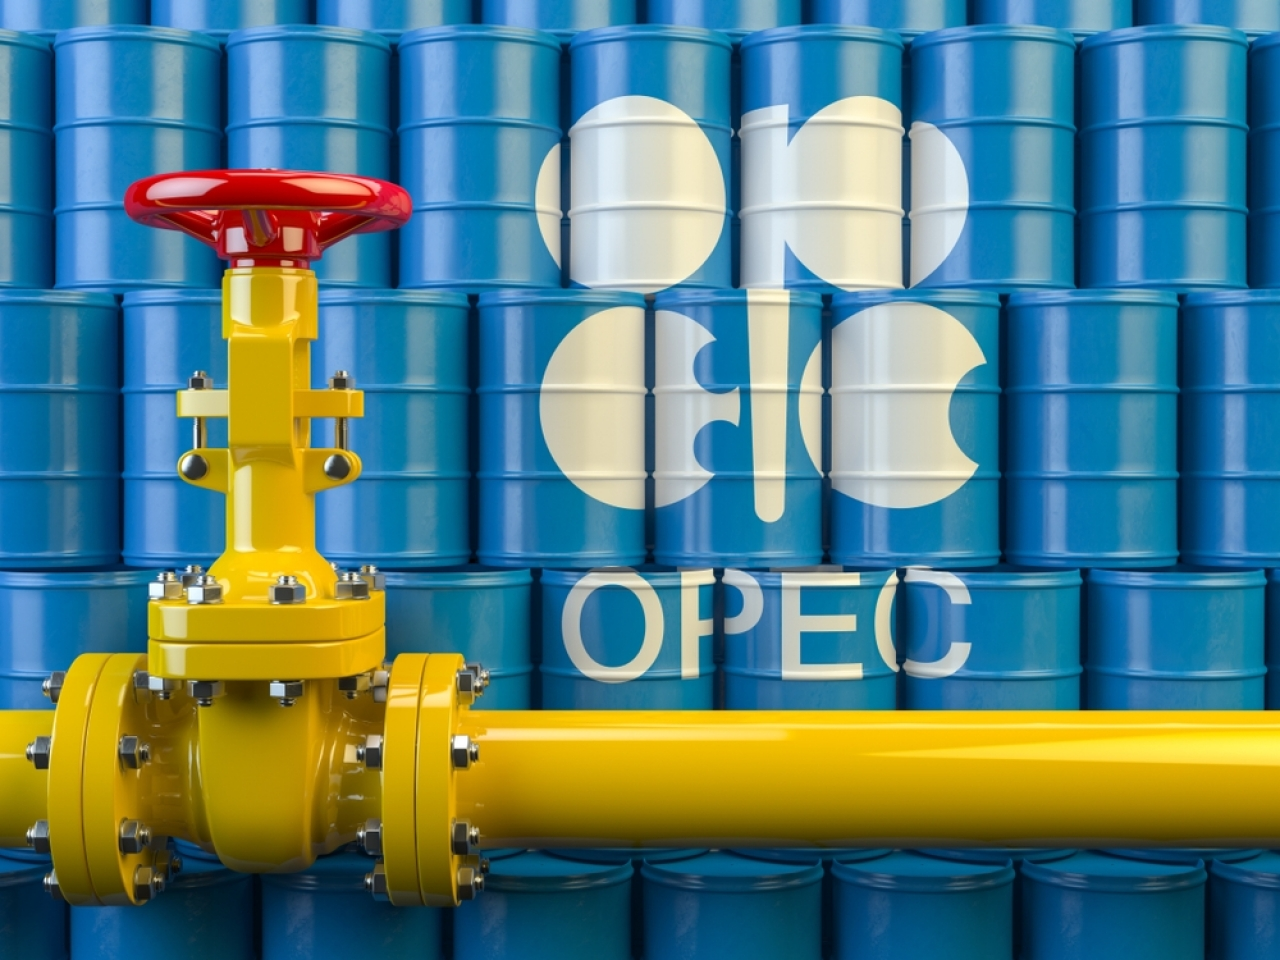 The OPEC+ meeting in Dubai decided to raise output by 400,000 barrels per day each month from August. Image: Shutterstock